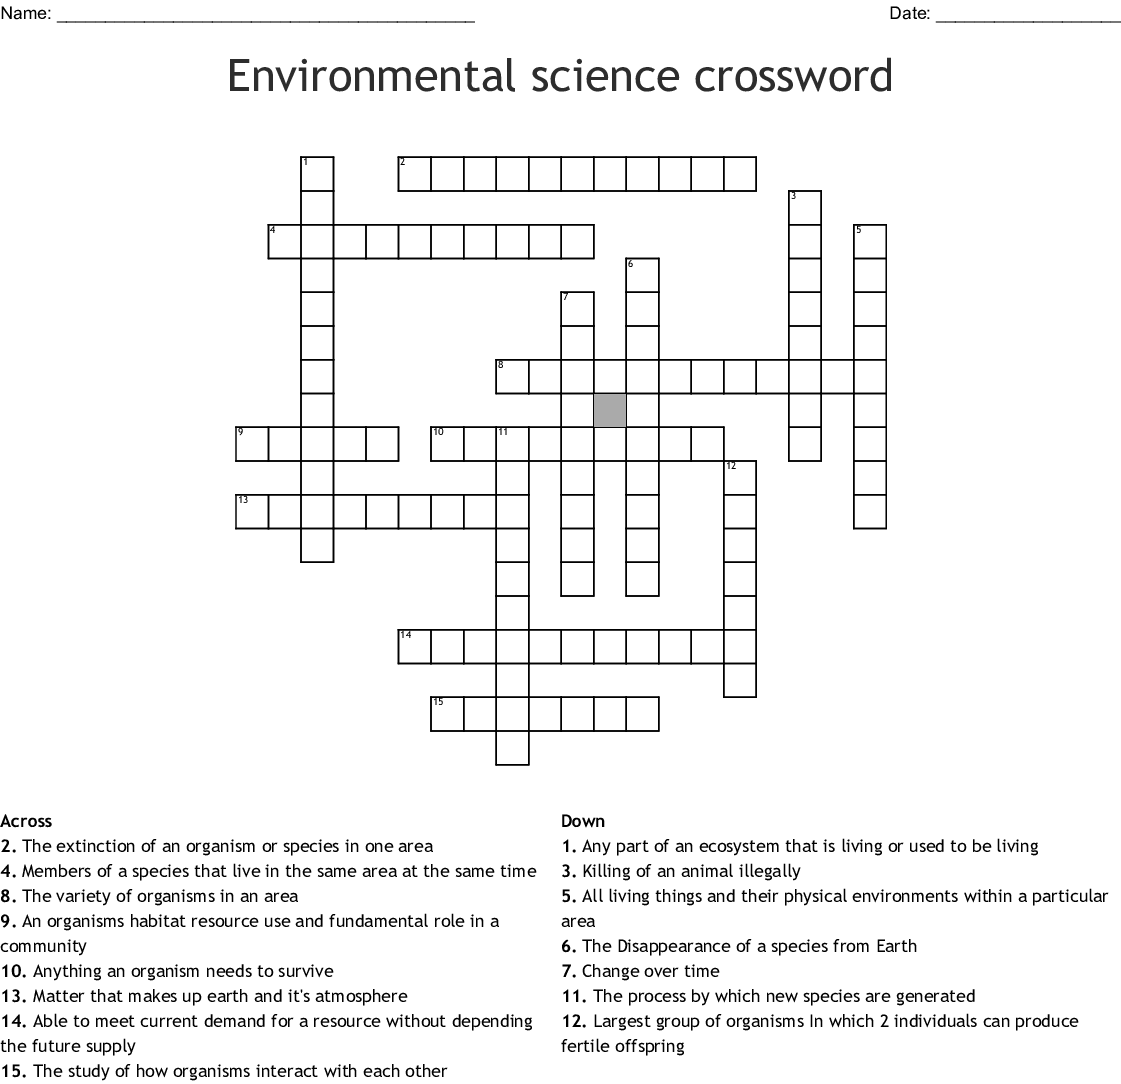 Forensic Science Crossword Puzzle Answers Wordmint ...